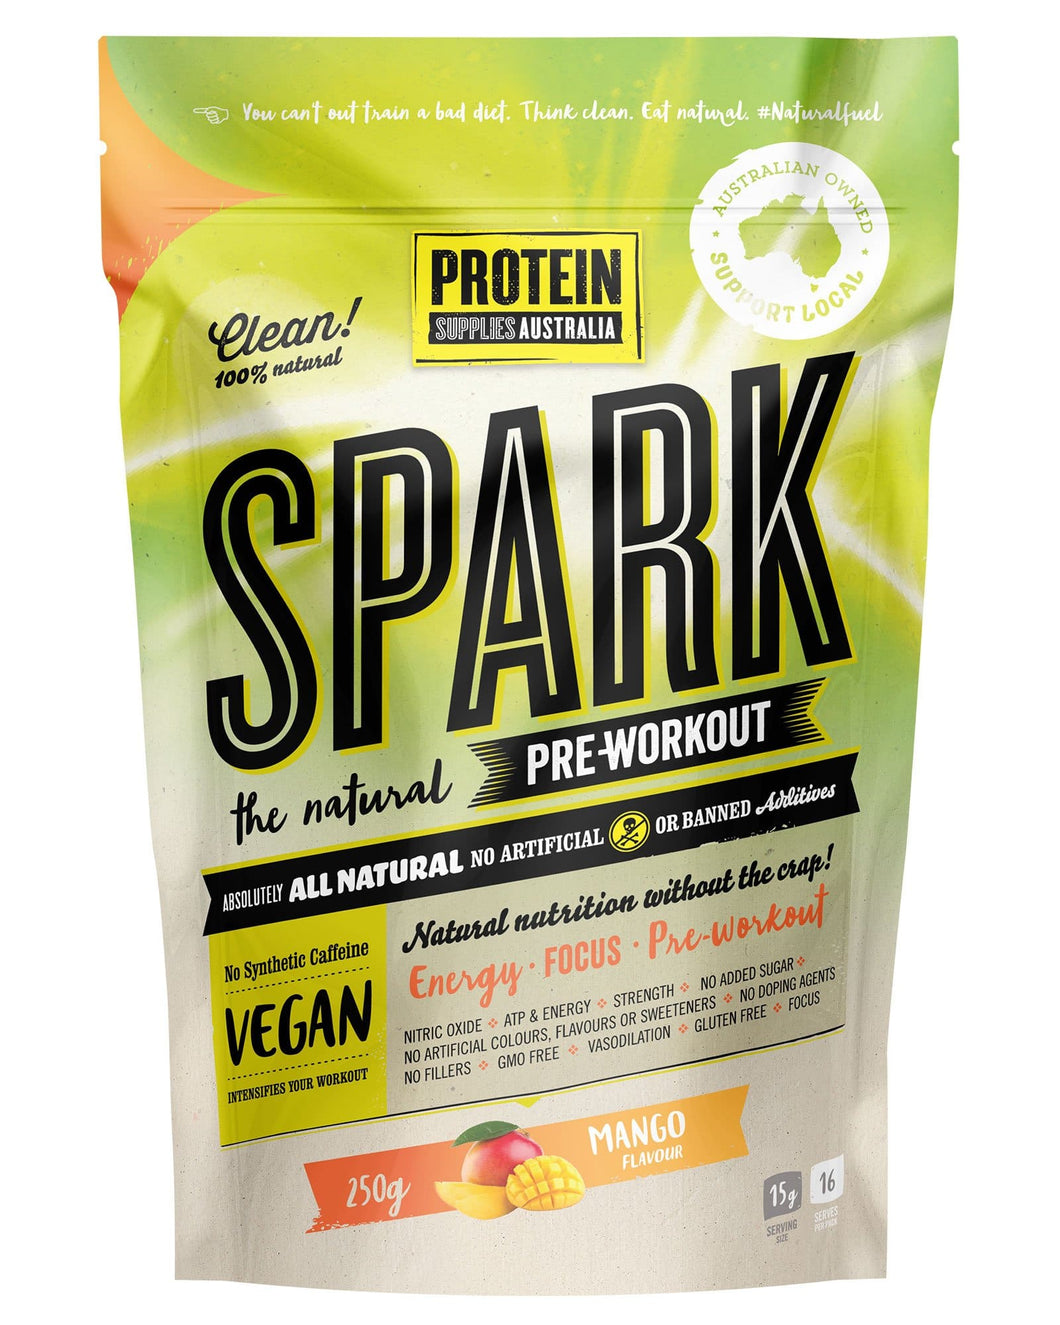 Protein Supplies Australia SPARK Pre-Workout - Australian Distributor - Oxygen Nutrition